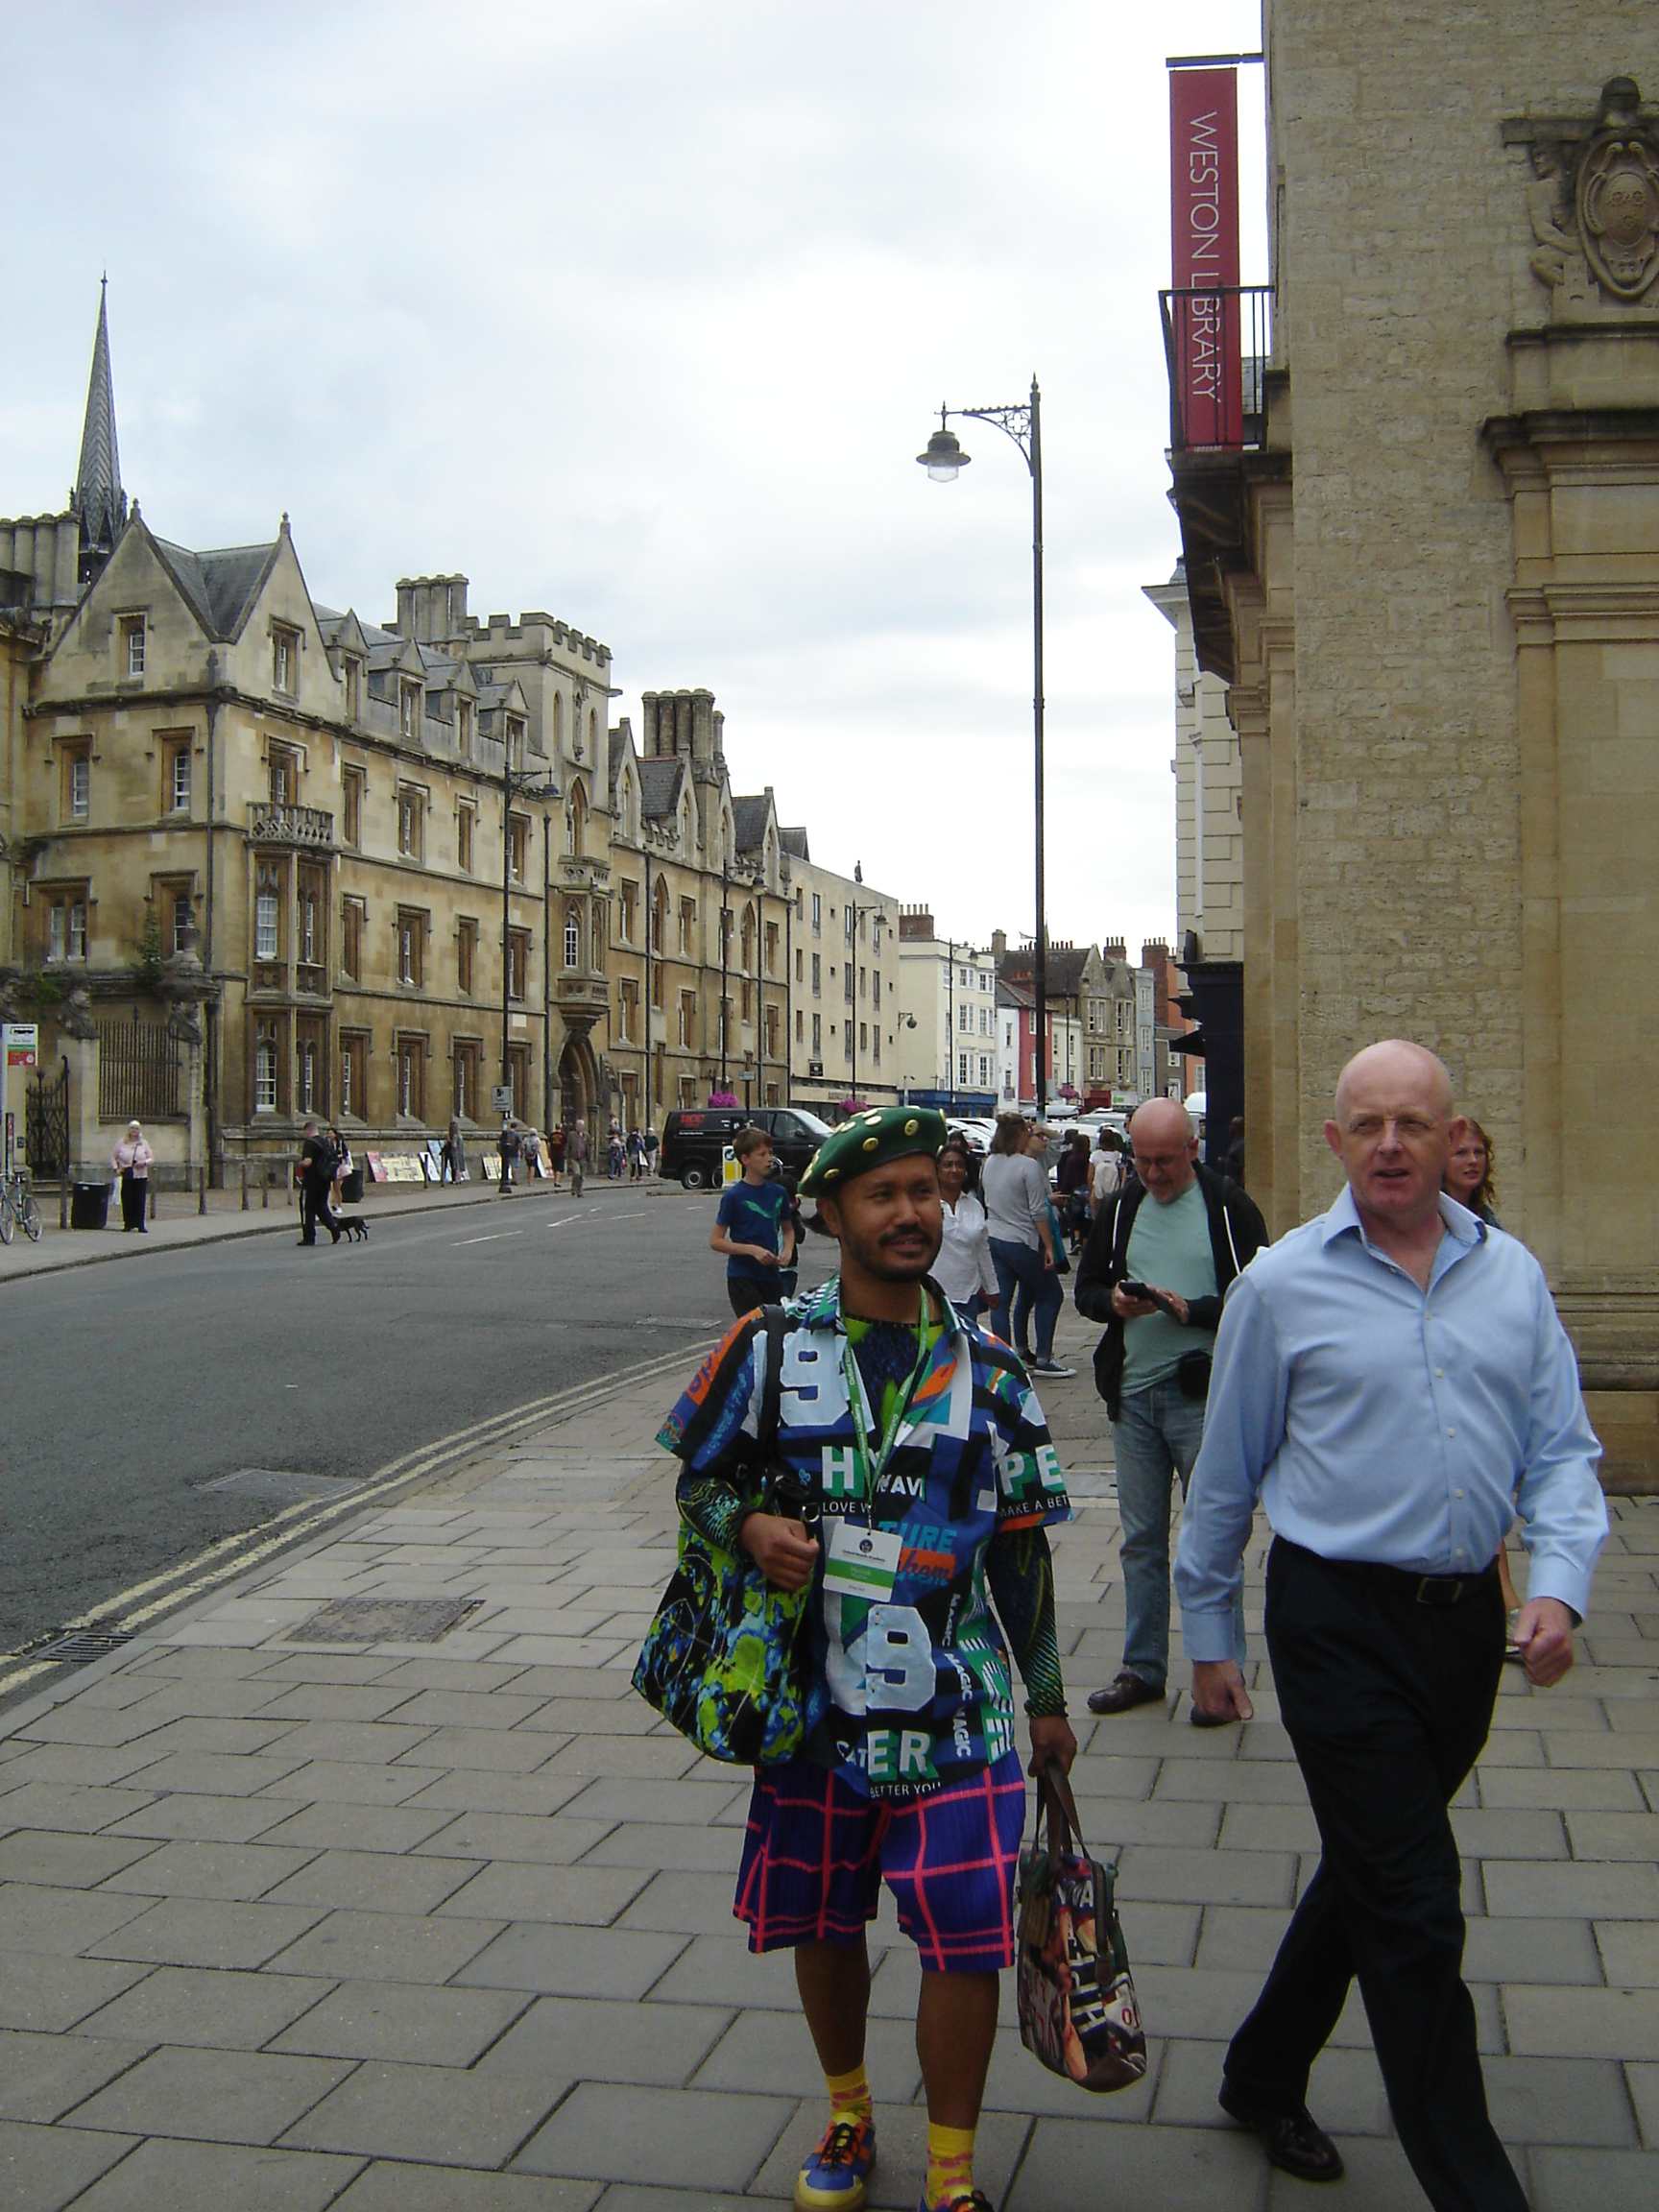 Non-drab person in Broad Street, Oxford